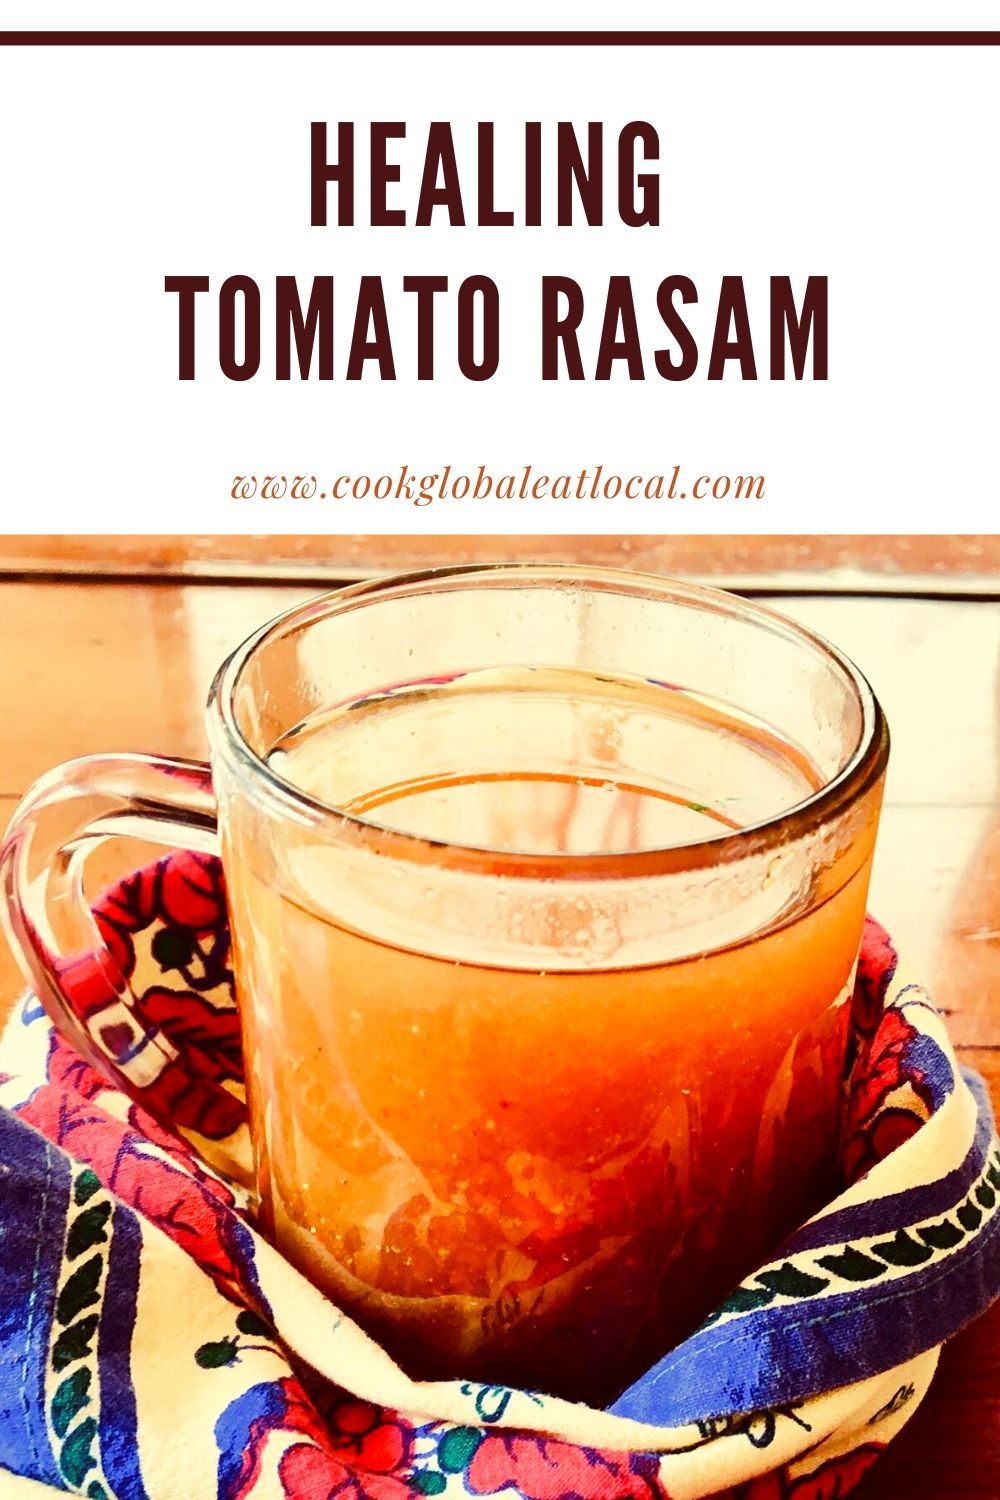 Healing South Indian Tomato Rasam | cookglobaleatlocal.com